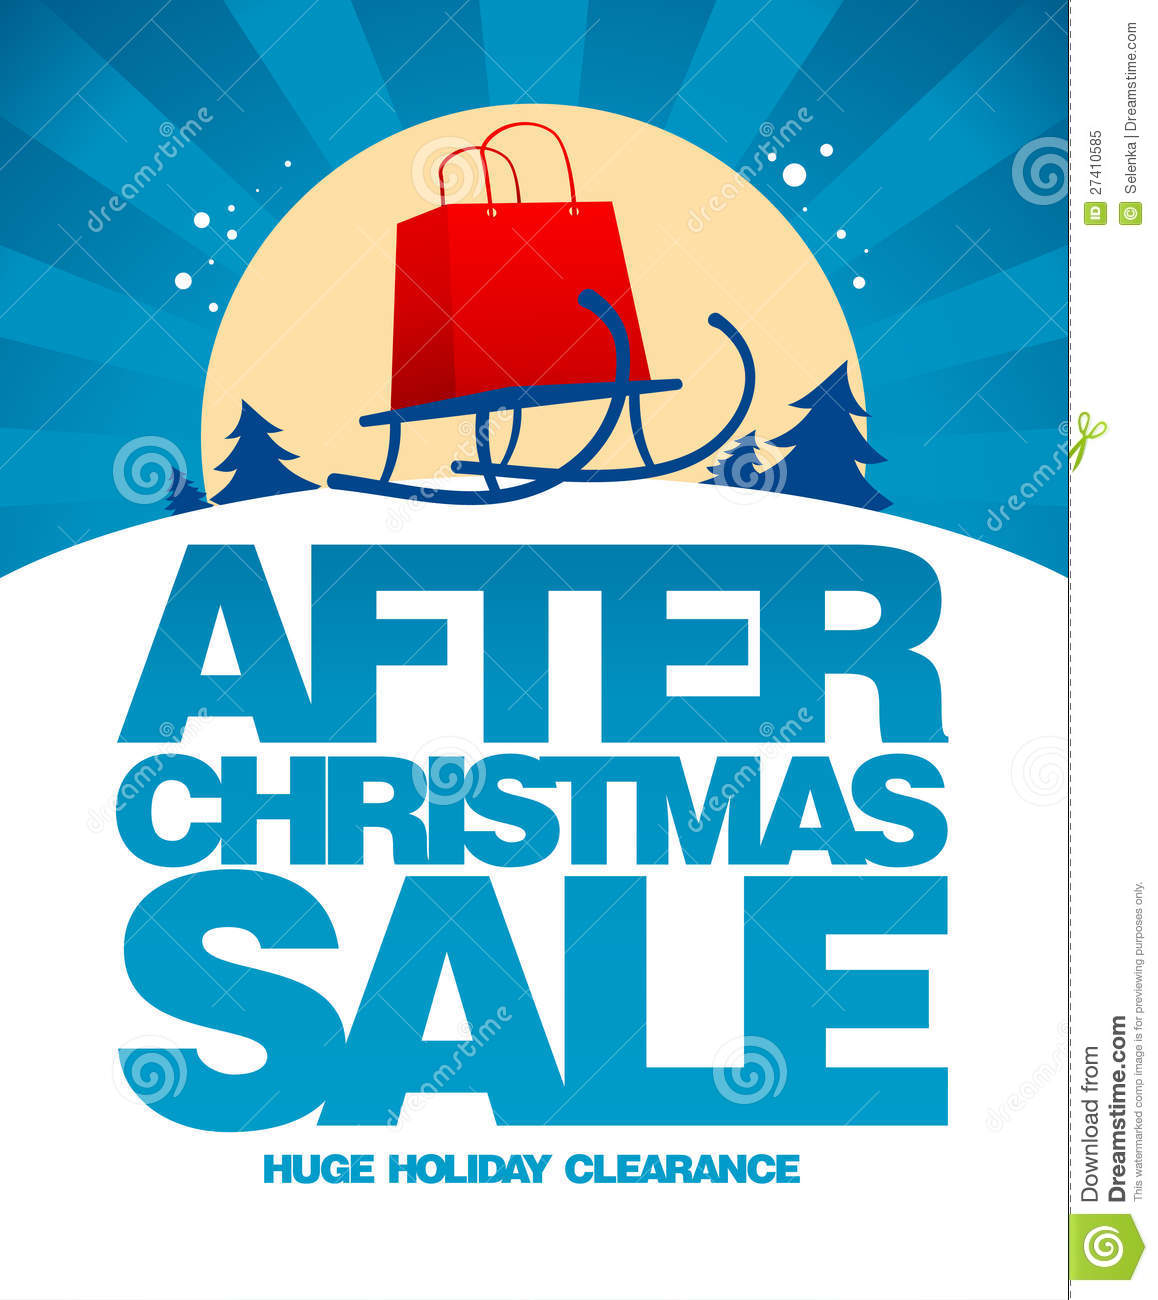 After Christmas Sale Design Template. Royalty Free Stock Photo ...